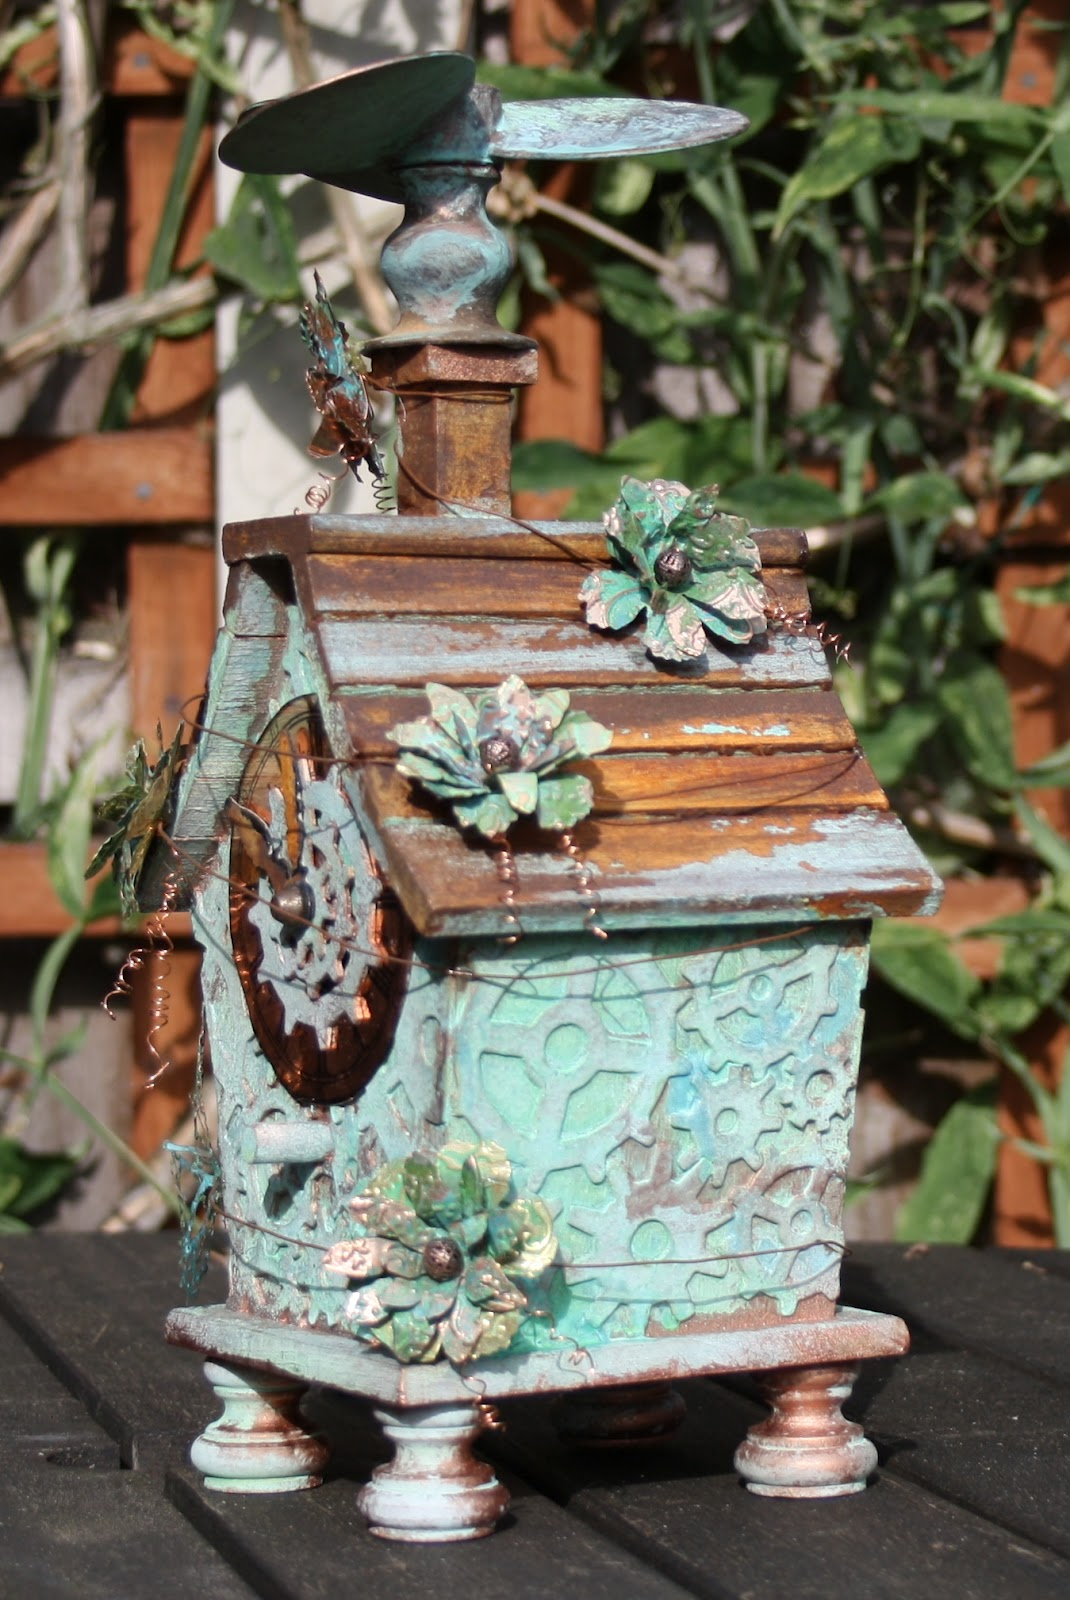 Carol Fox Welcome 2 My World Steampunk Birdhouse